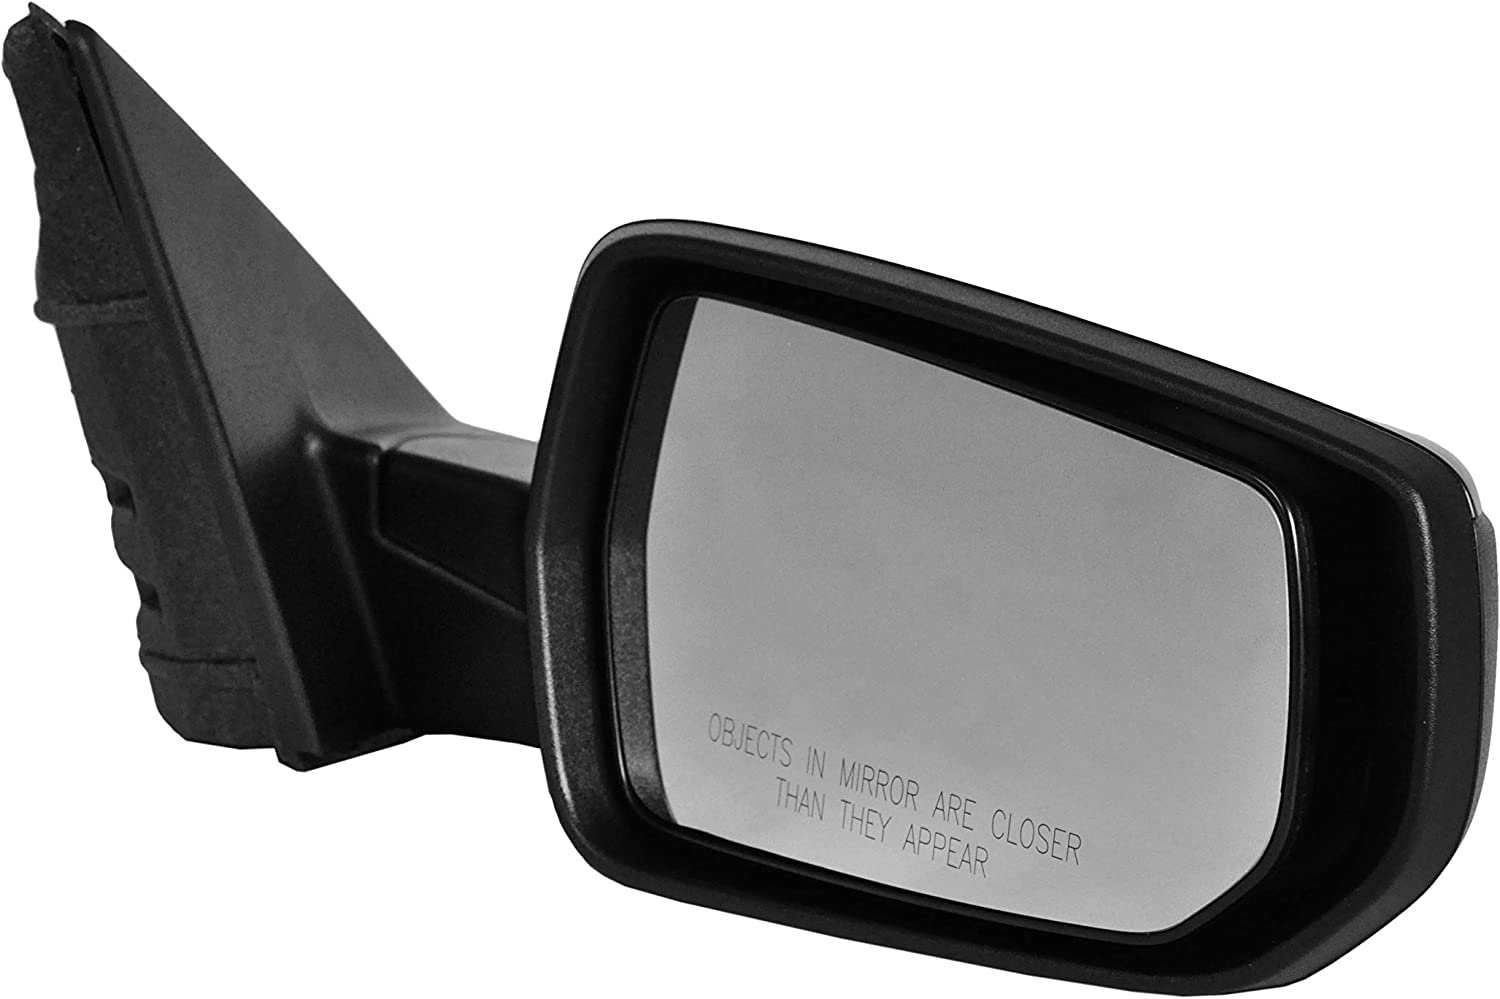 LS Model Passenger Side Power Operated Mirror With Matching Paint Fits 16-18 Malibu LS Manual Folding Parts Link #: GM1321538